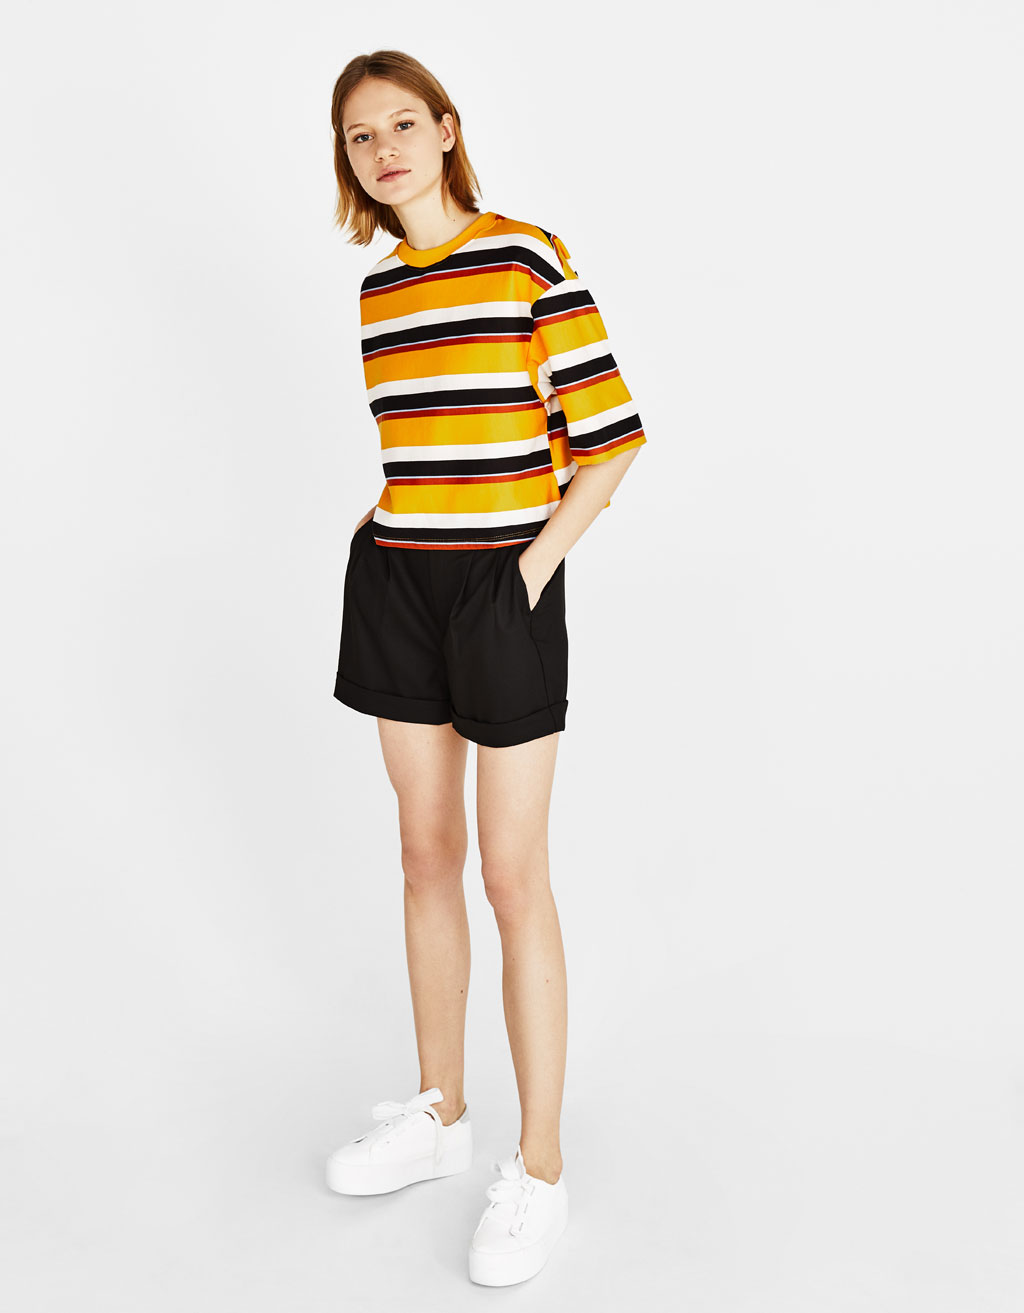 Oversized short sleeve striped sweatshirt